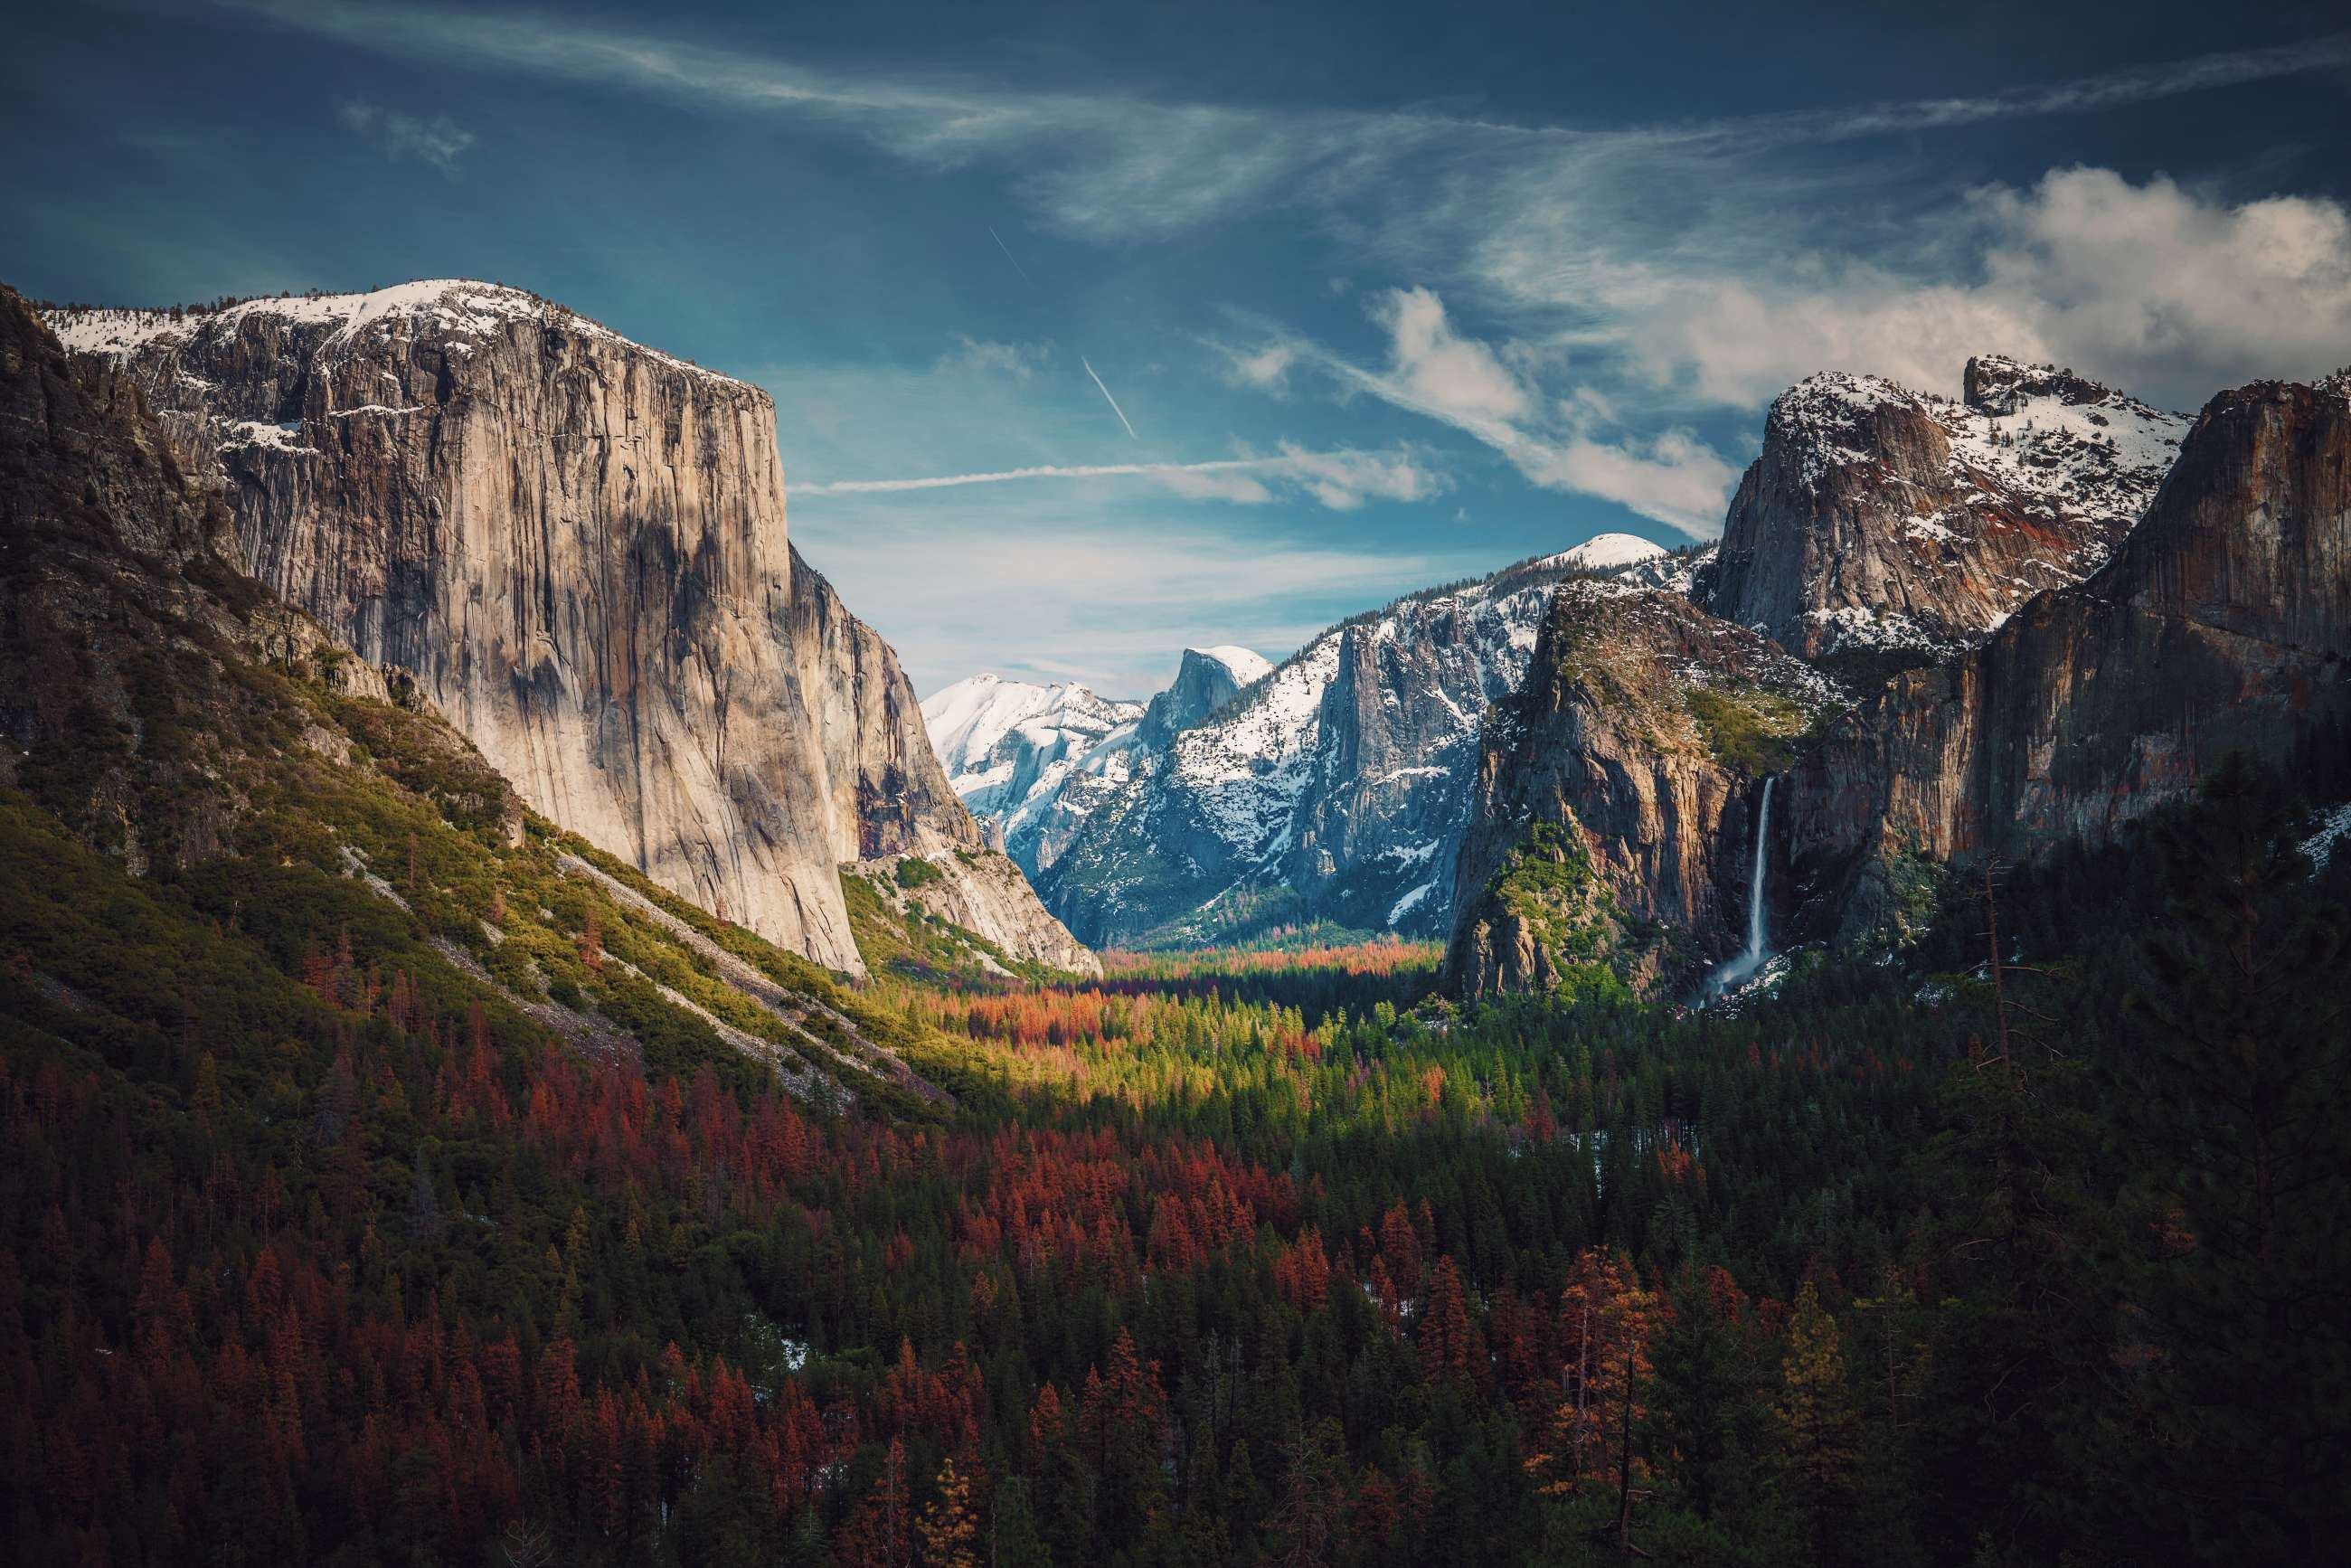 Yosemite Valley, with Half Dome